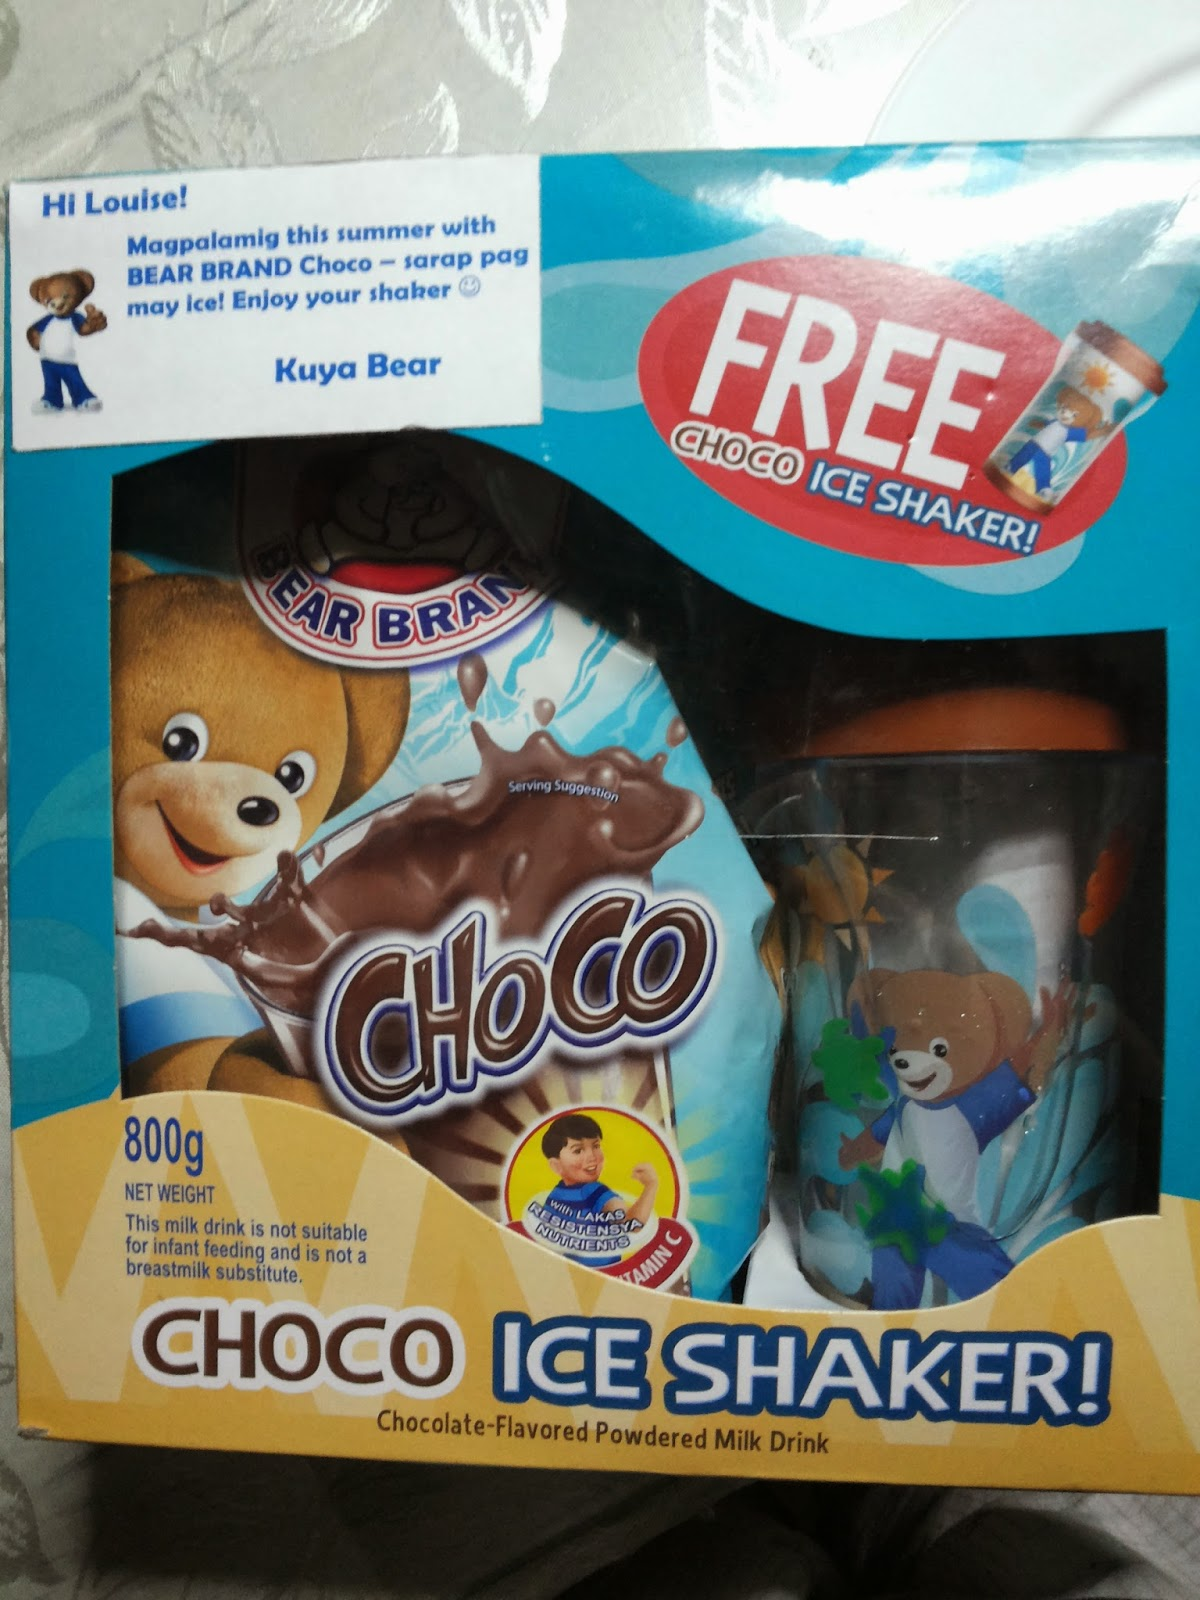 Bear Brand Choco With Ice